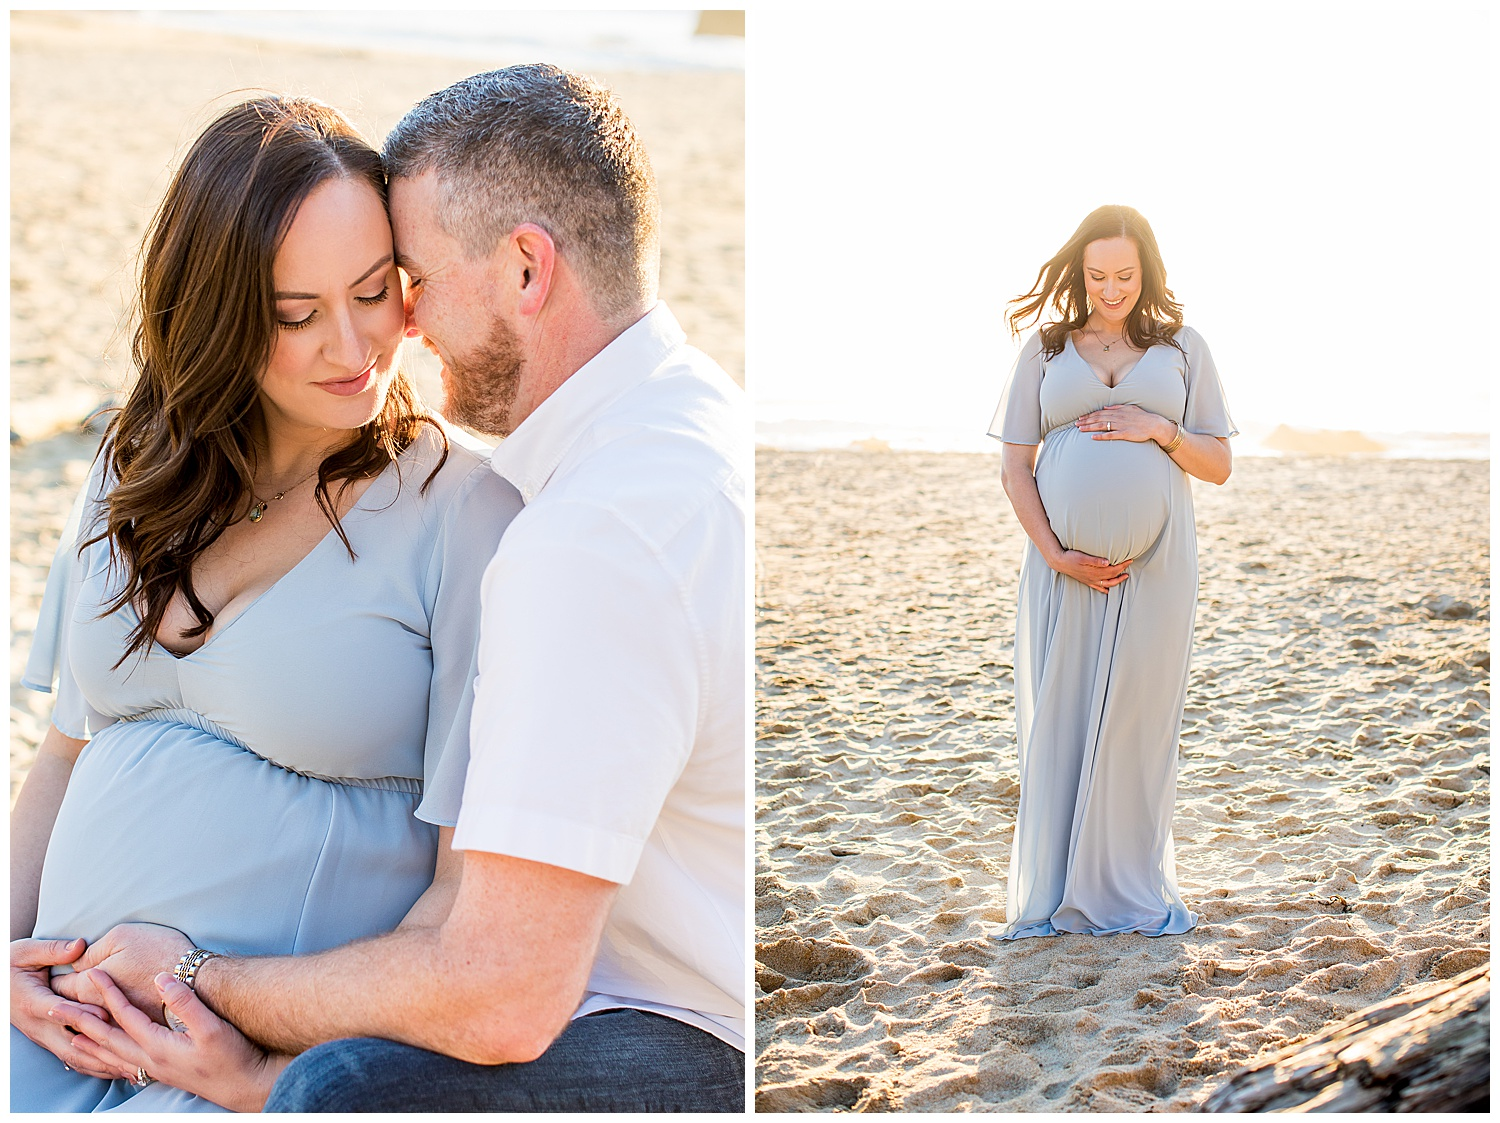 bayarea-maternity-photography-04.jpg